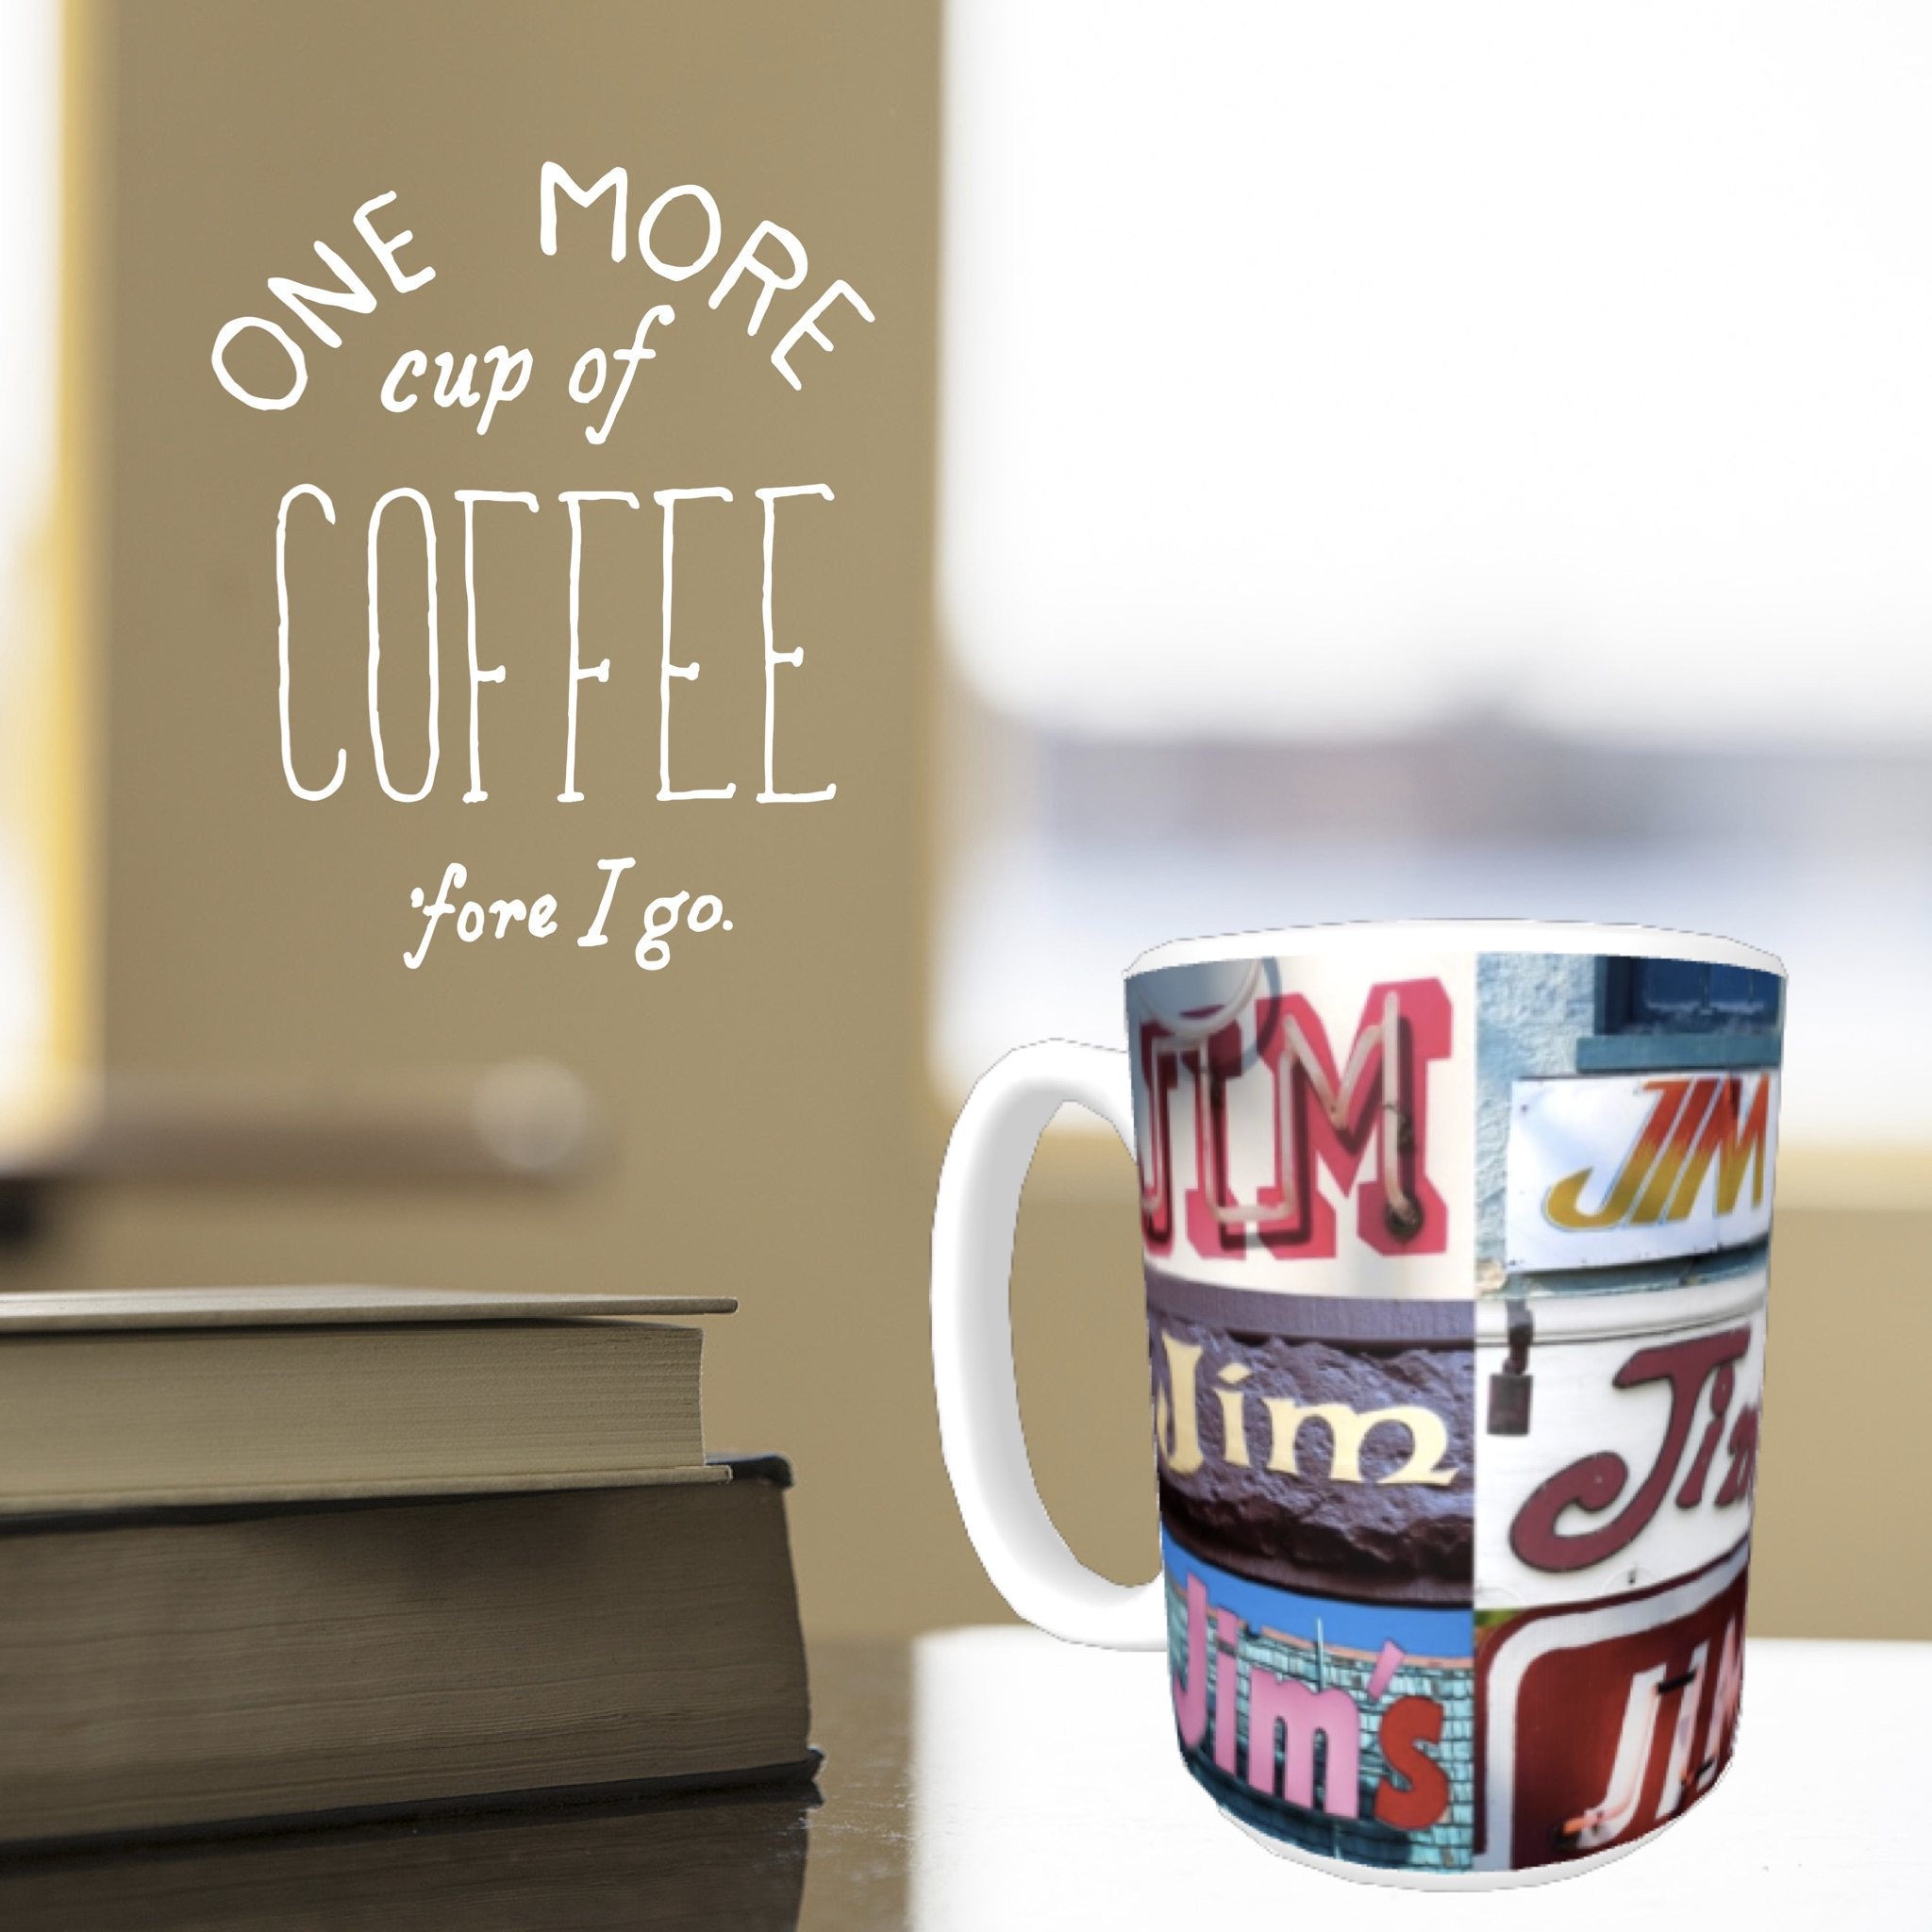 https://www.etsy.com/listing/218817155/personalized-coffee-mug-featuring-the?ref=shop_home_feat_4